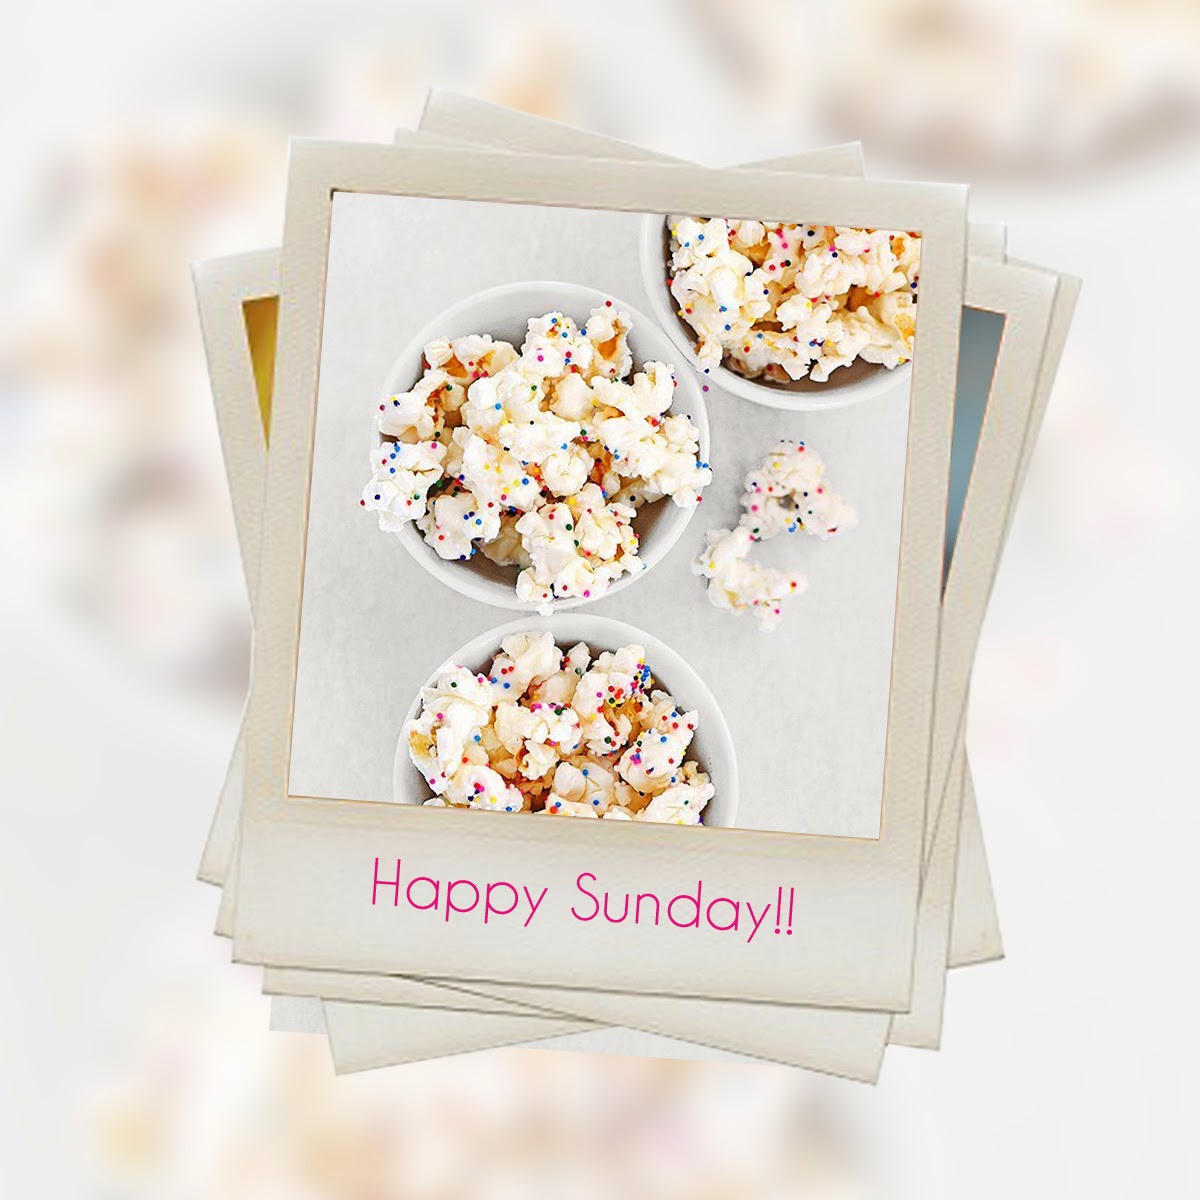 Happy sunday, Happy, sunday , Pop corn, palomitas, finde, weekend, fin de semana, La Musa, La Musa Decoración